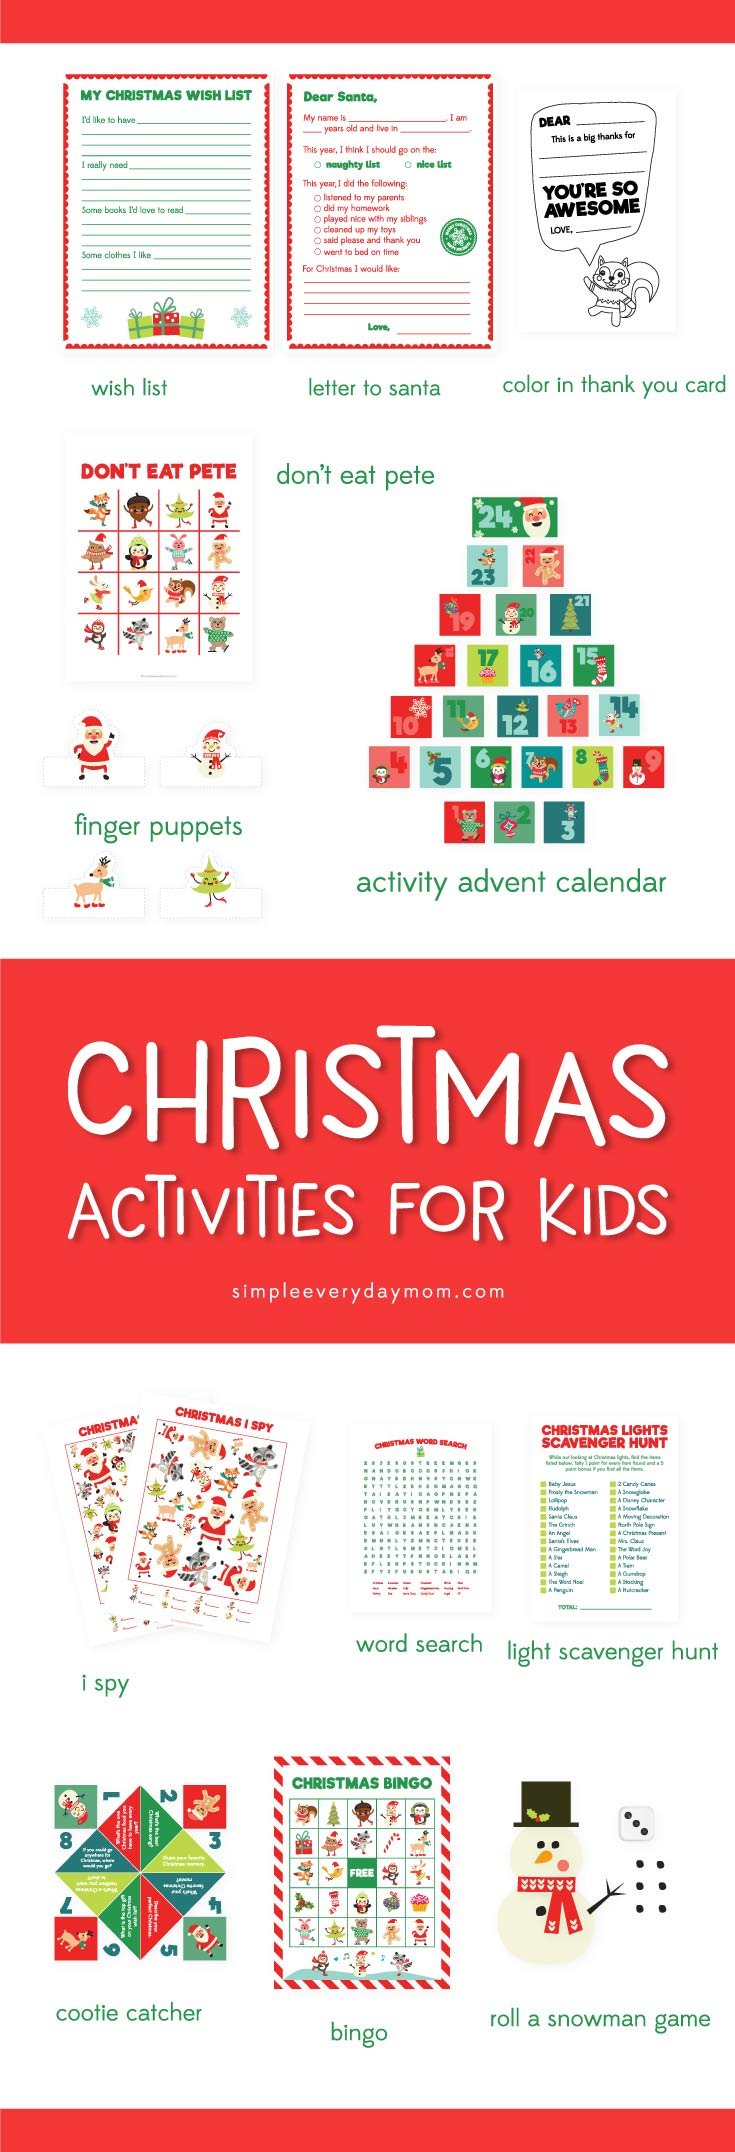 12 Christmas Activities For Kids You\'ll Want To Do Every Year